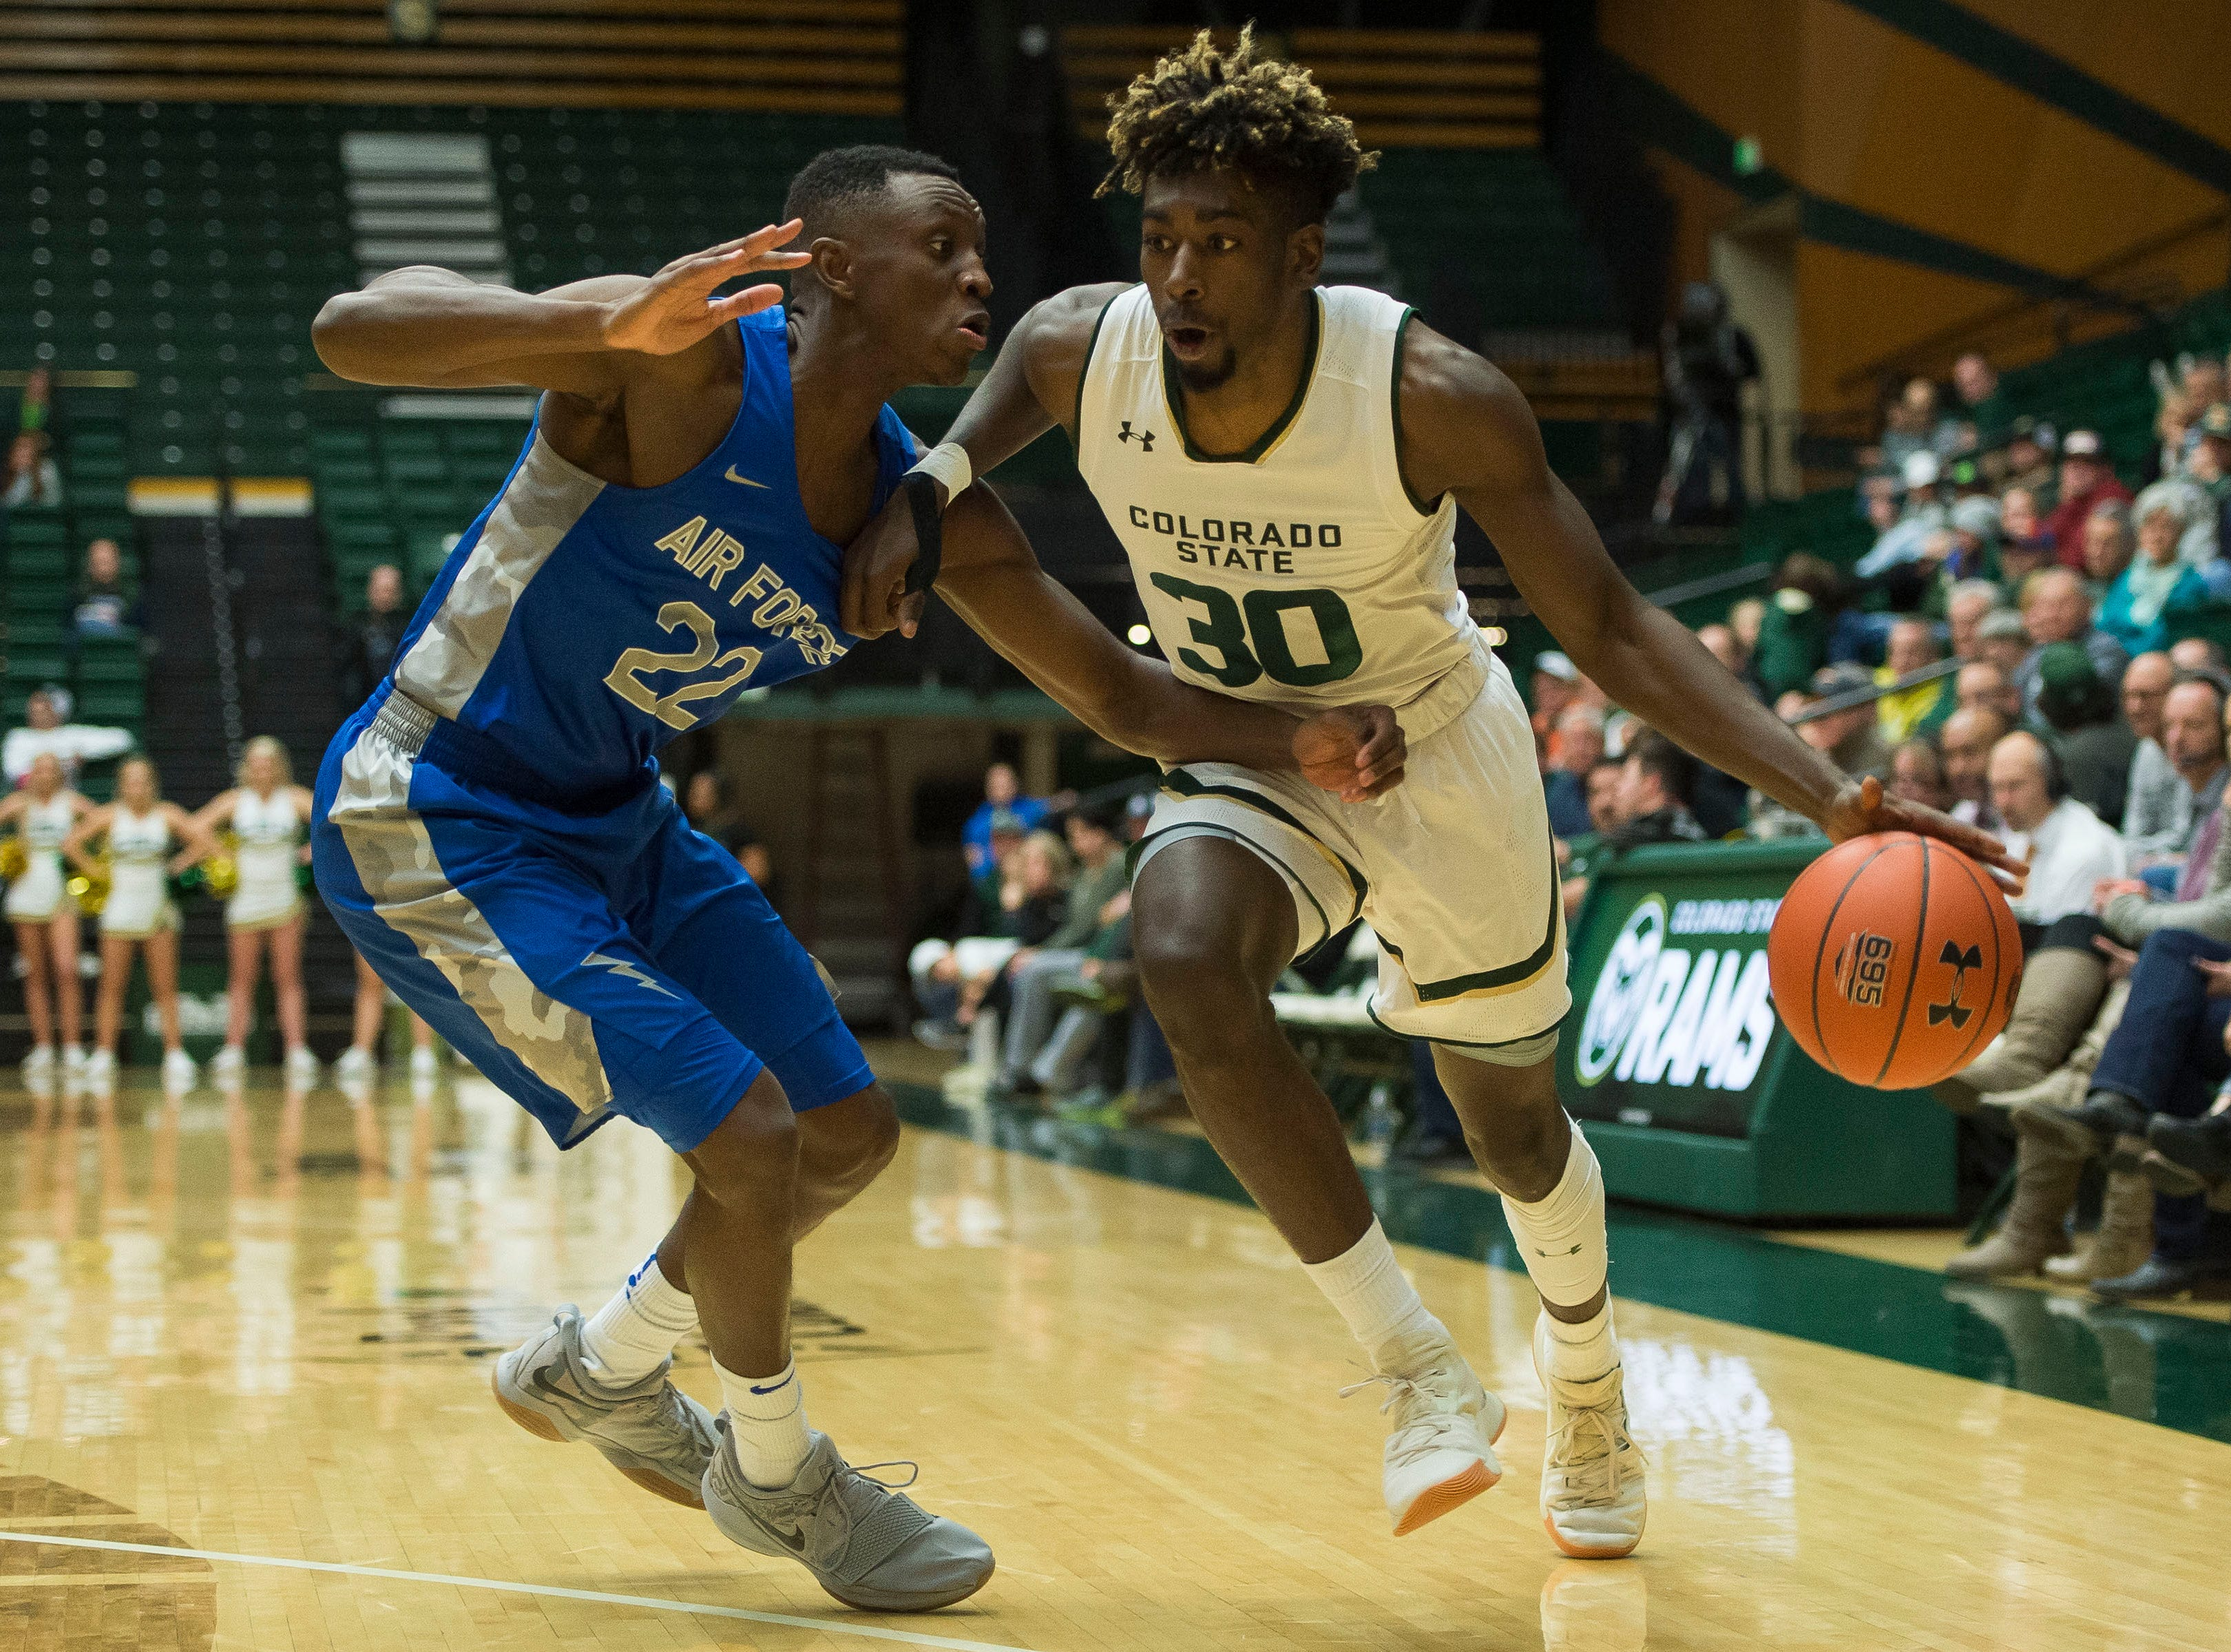 Colorado State University junior guard Kris Martin (30) drives past Air Force Academy senior guard PErvis Louder (22) on Tuesday, Jan. 8, 2019, at Moby Arena in Fort Collins, Colo.